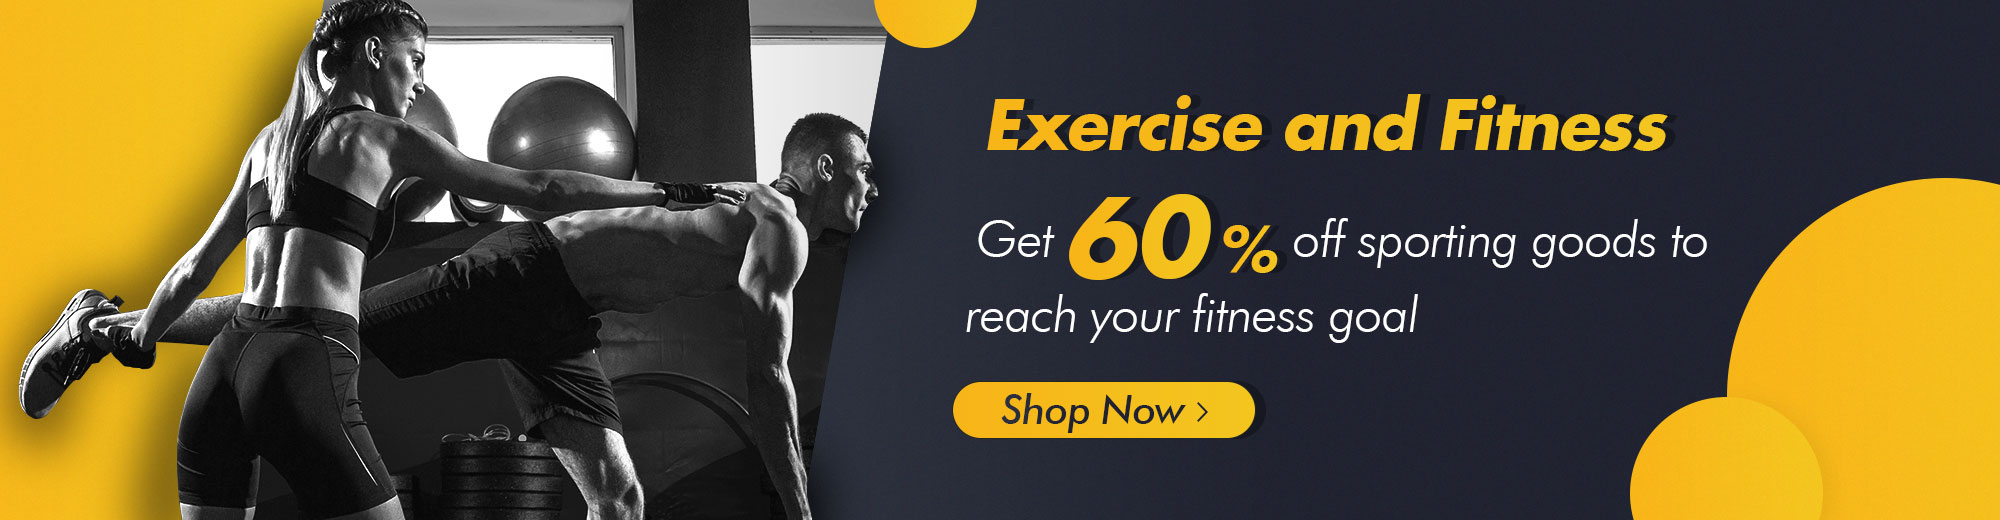 Buy sporting goods on Costway, get 60% off sporting goods to reach your fitness goal, and enjoy savings and discounts with fast, free shipping.